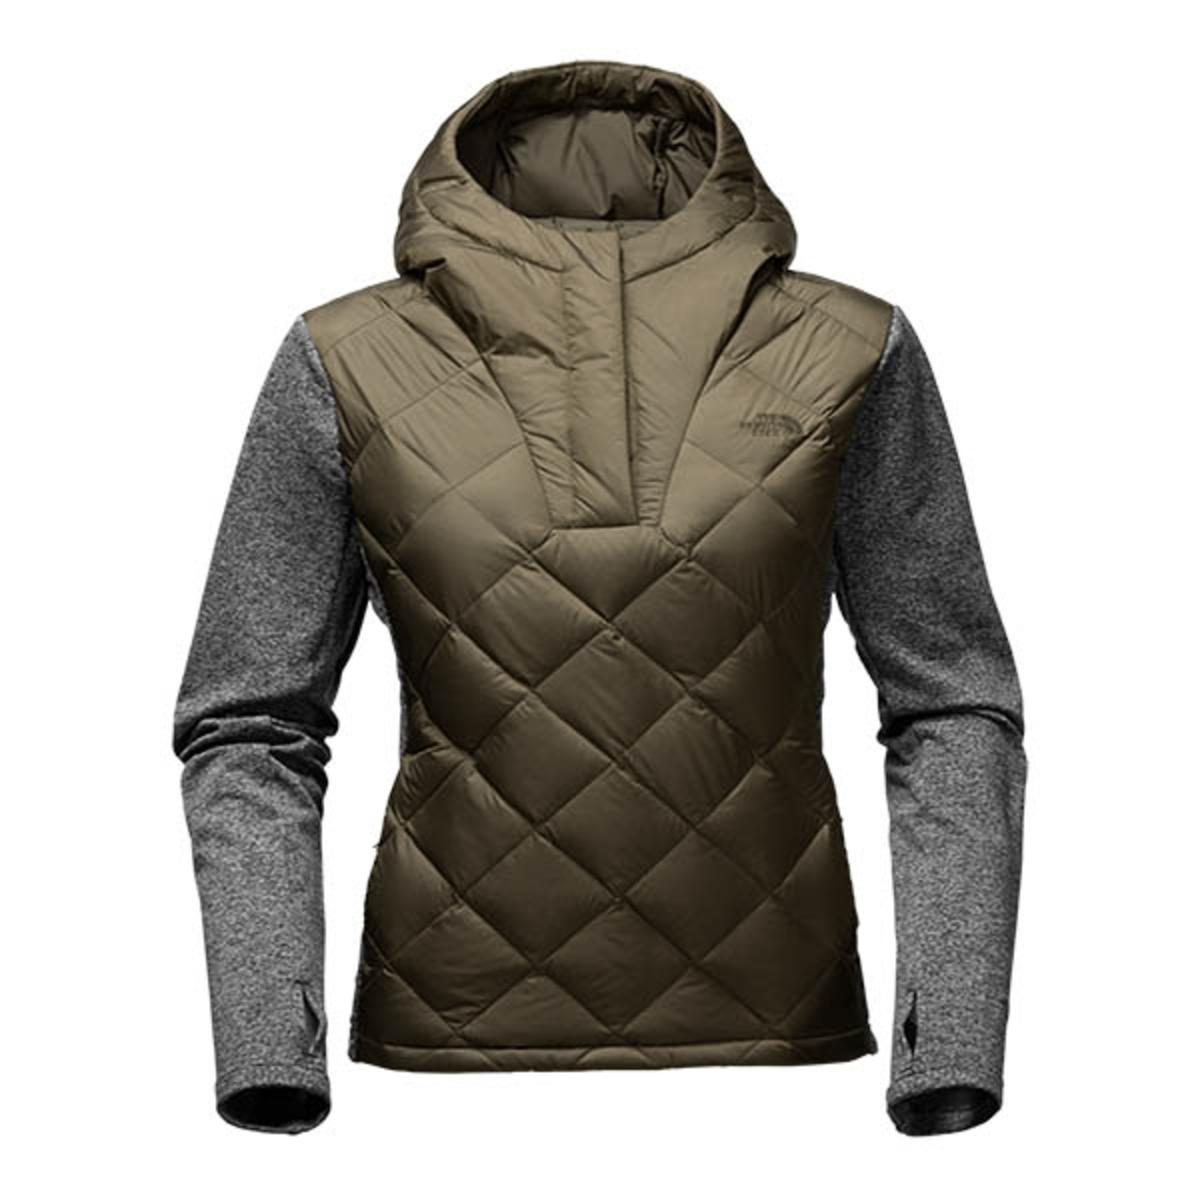 38b3e9966d88 The North Face Women s Harway Hybrid Pull-Over - The Warming Store